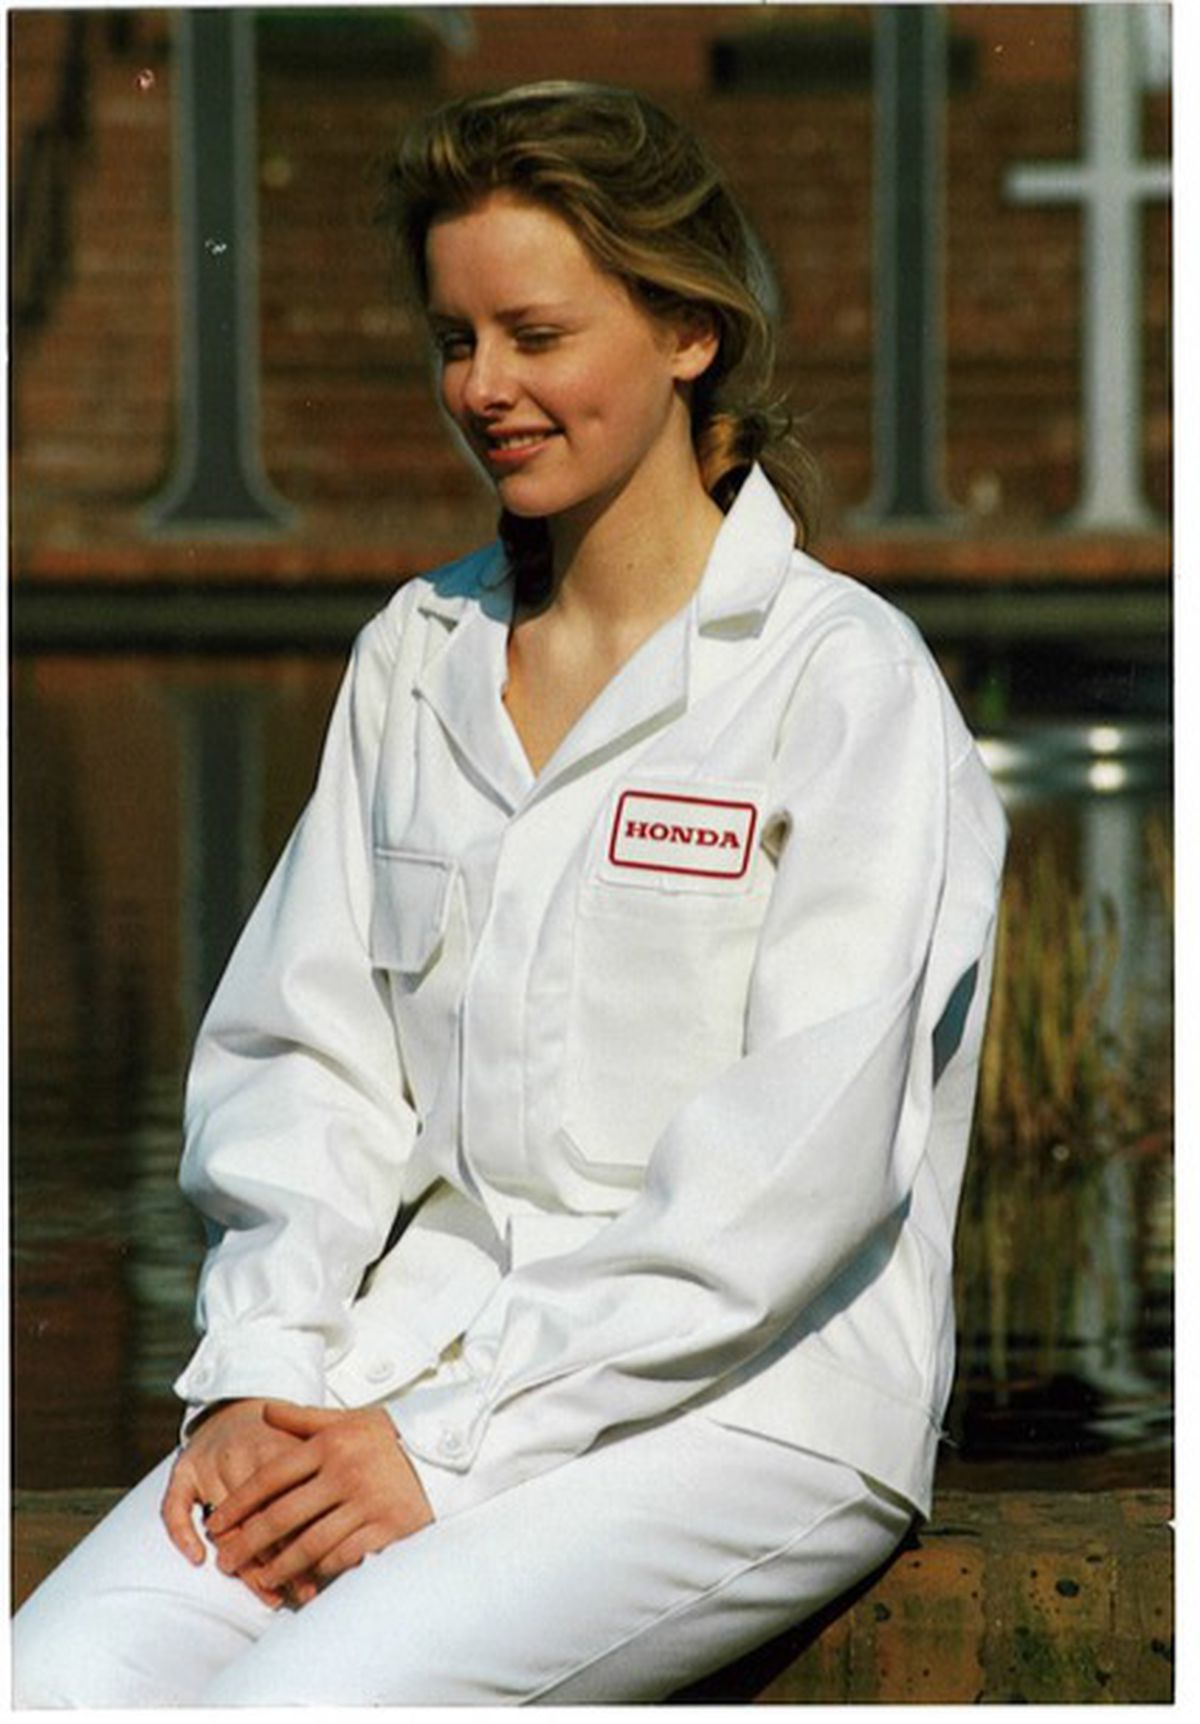 Holly Worthington, Mike's daughter, wearing Honda workwear designed and manufactured by JM Worthington